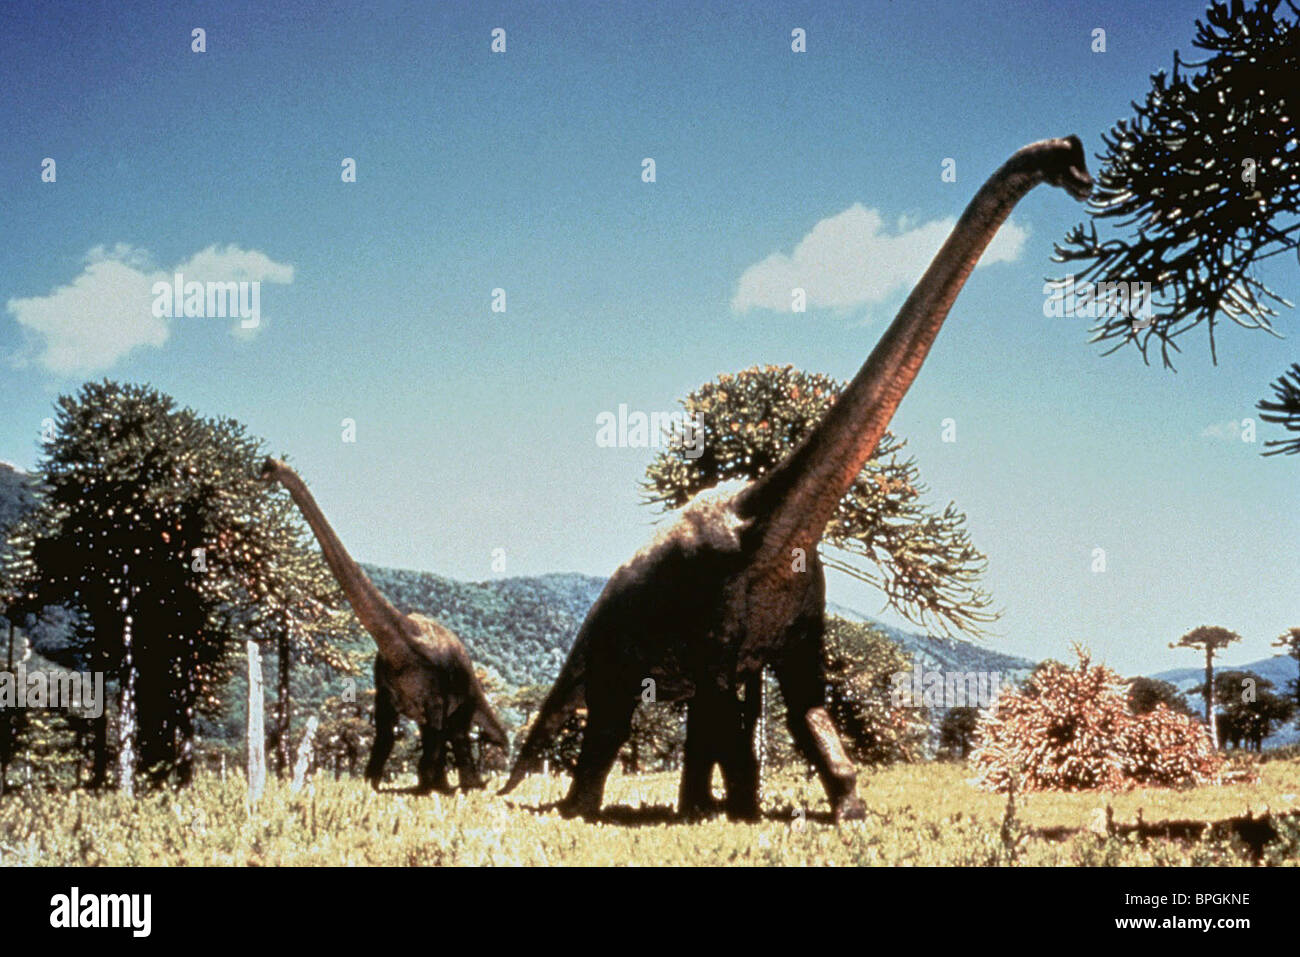 Le DIPLODOCUS Walking with Dinosaurs (1999) Banque D'Images